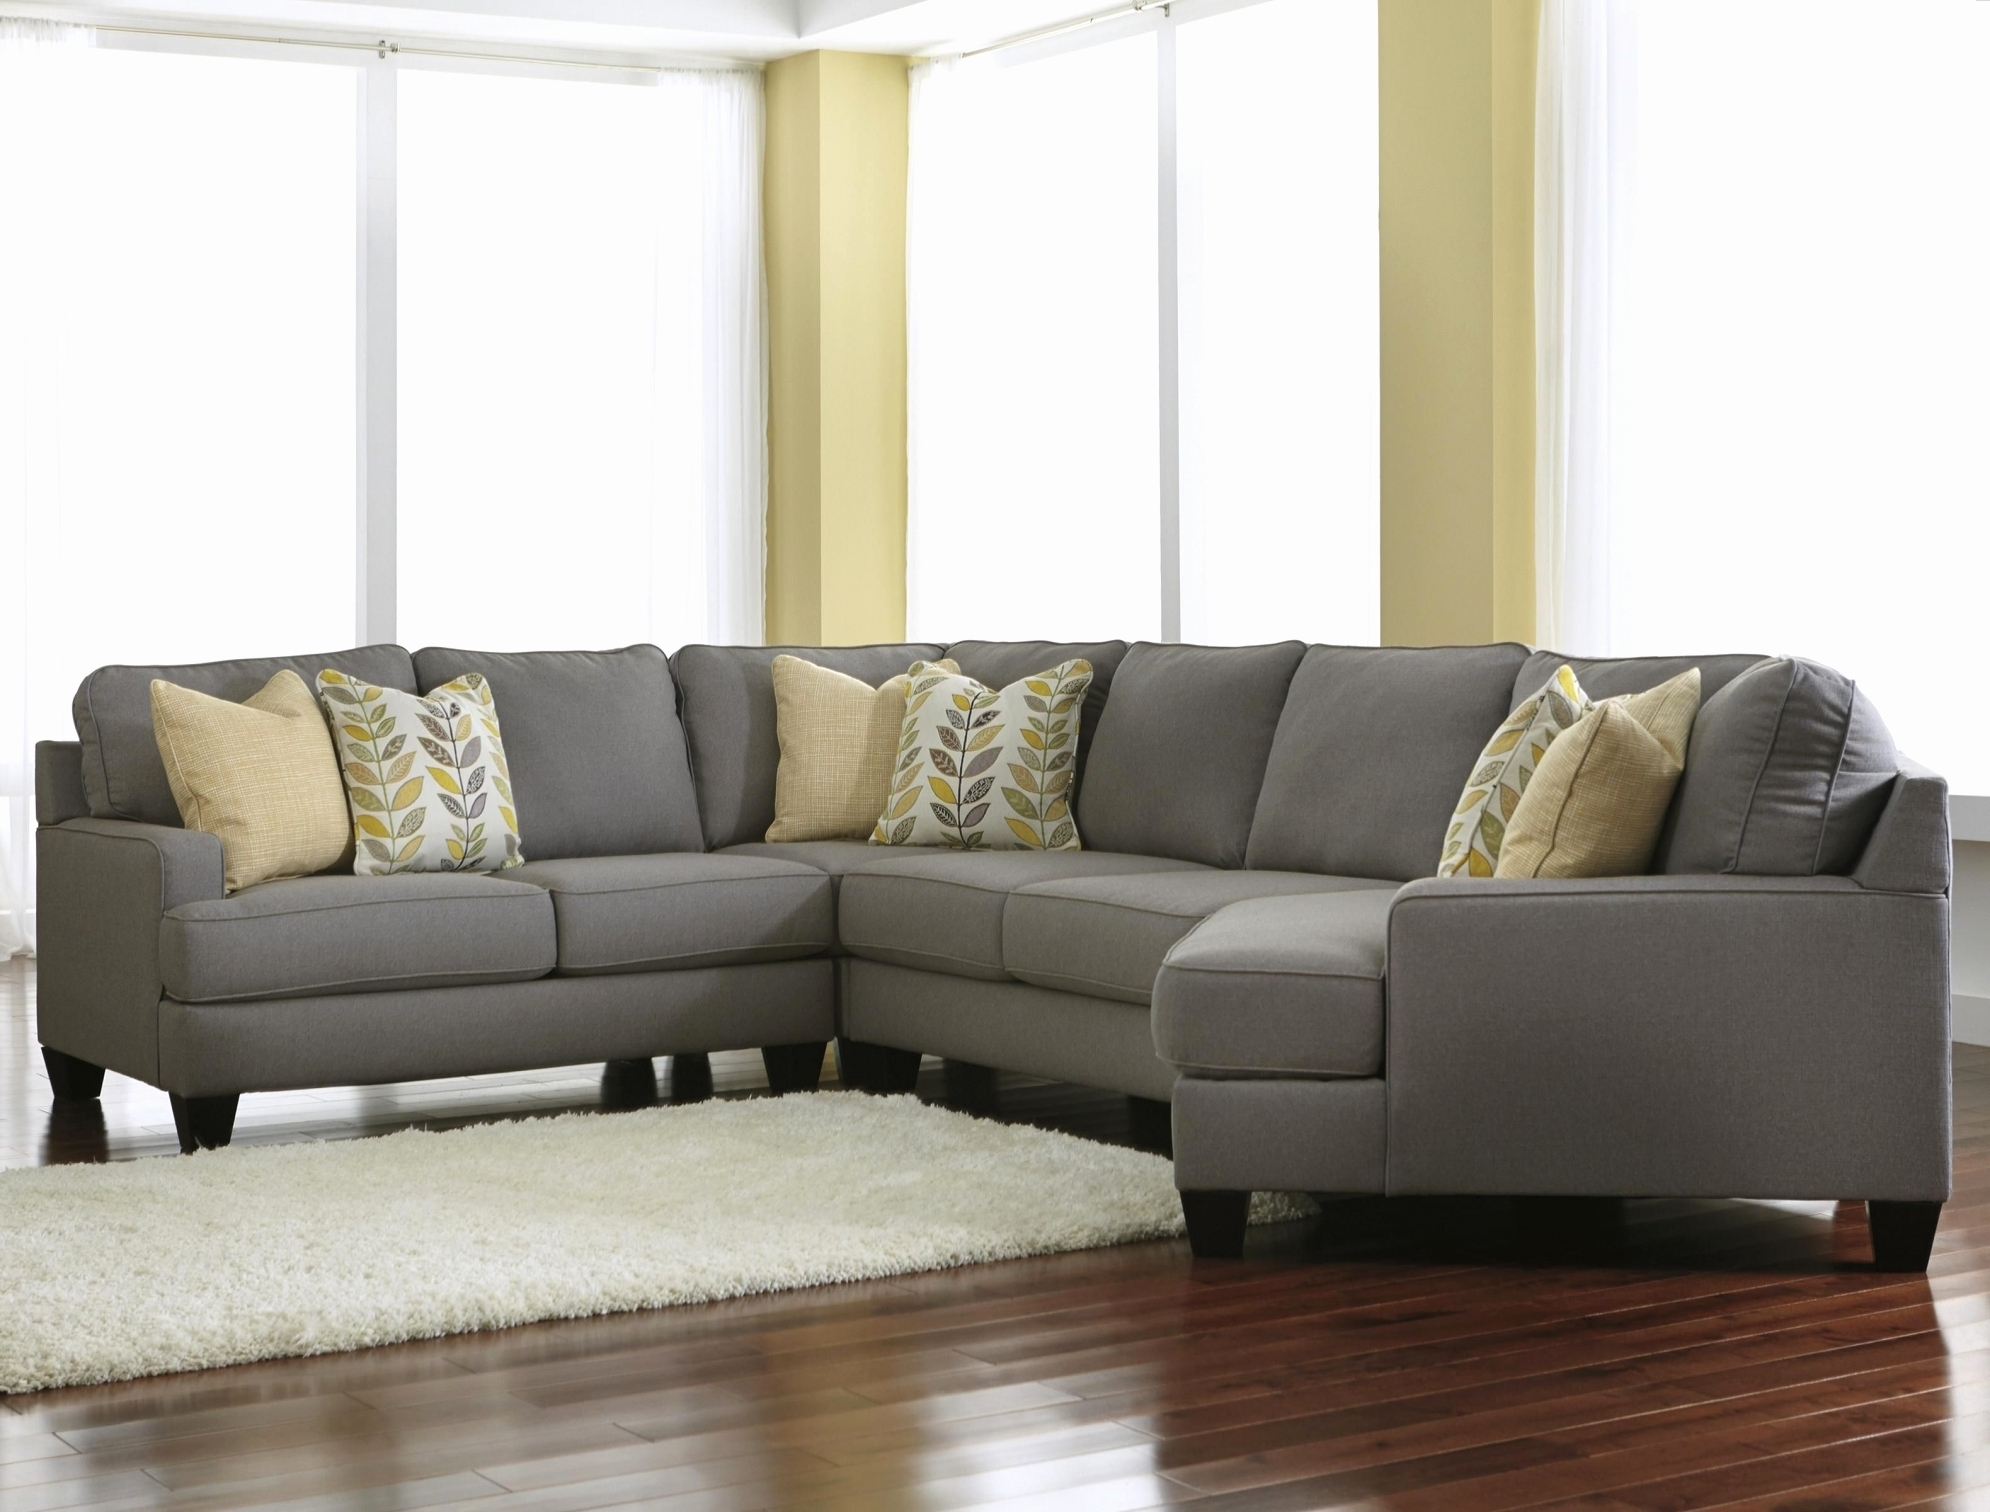 32 Lovely Sectional Sofas Clearance Photos – Sectional Sofa Design For Most Recently Released Nashua Nh Sectional Sofas (View 6 of 15)